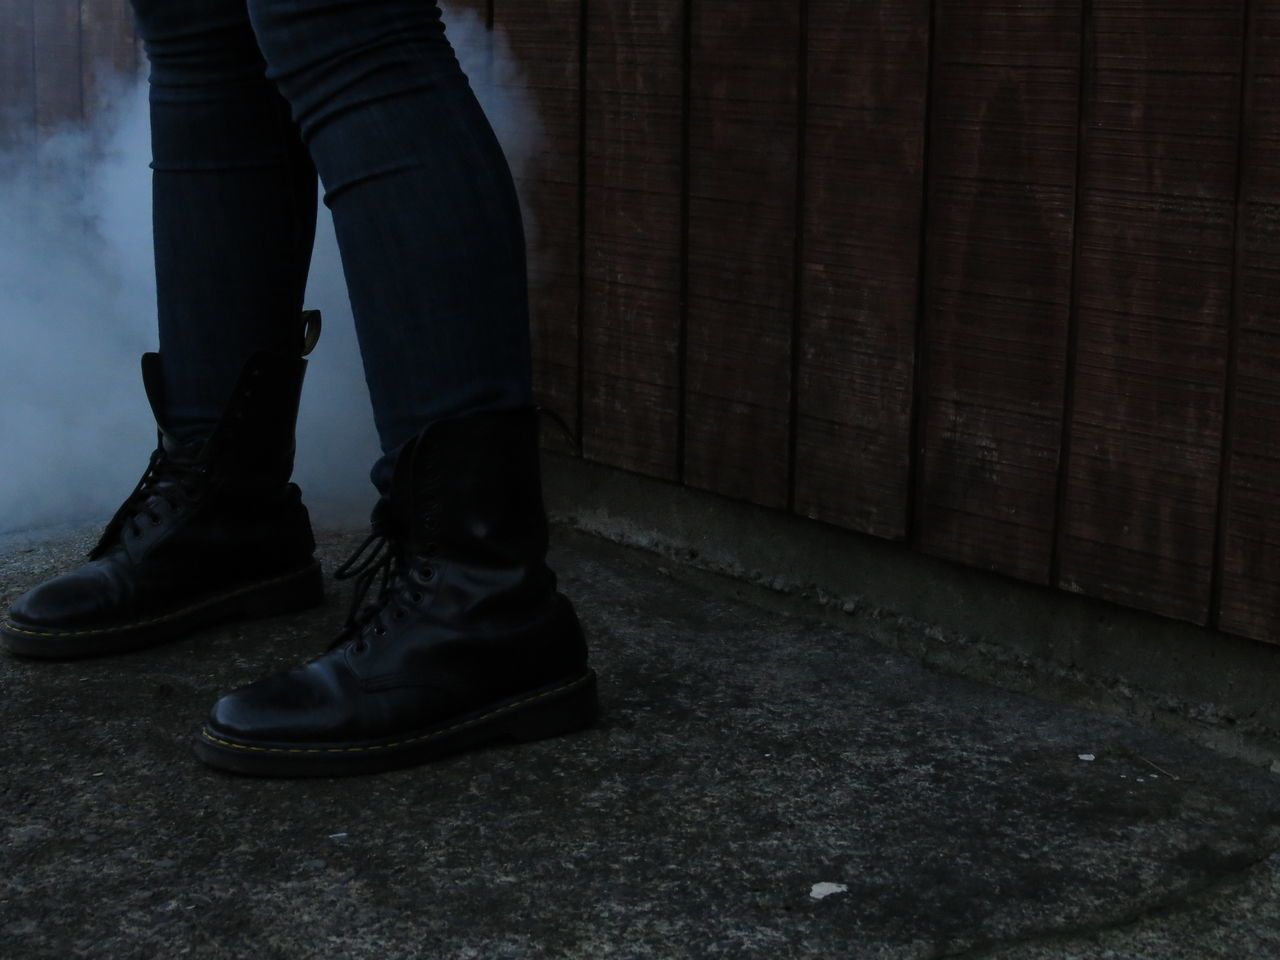 Adult People Human Body Part Surreal Dreamlike Dramatic Smoke And Mirrors Riot Politics And Government Adults Only Day Boots Denim Smoke Cloud Legs Standing Surrealism Weatherboards Edgy Stained Wood Concrete Moody Unfiltered Unedited